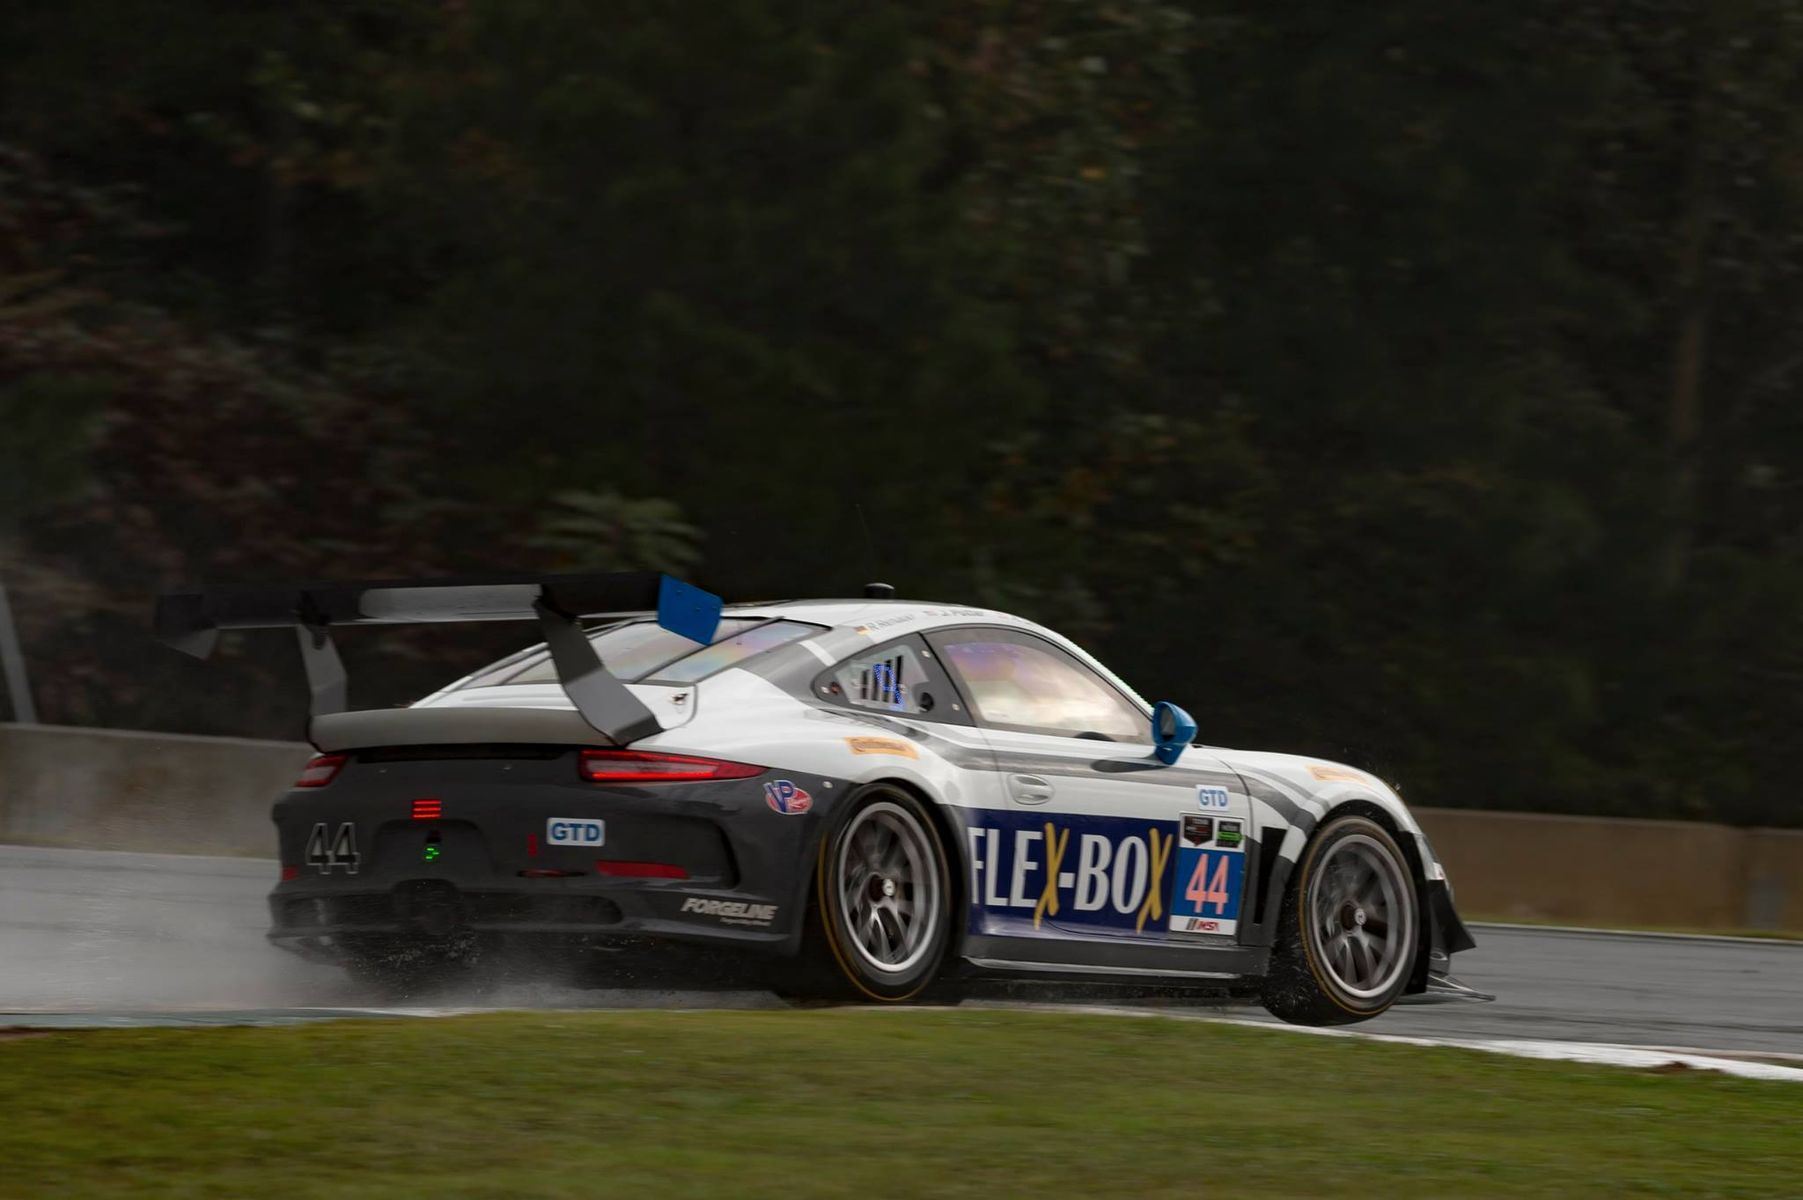 2015 Porsche 911 | Magnus Racing #44 Porsche Second at 2015 Petit Le Mans